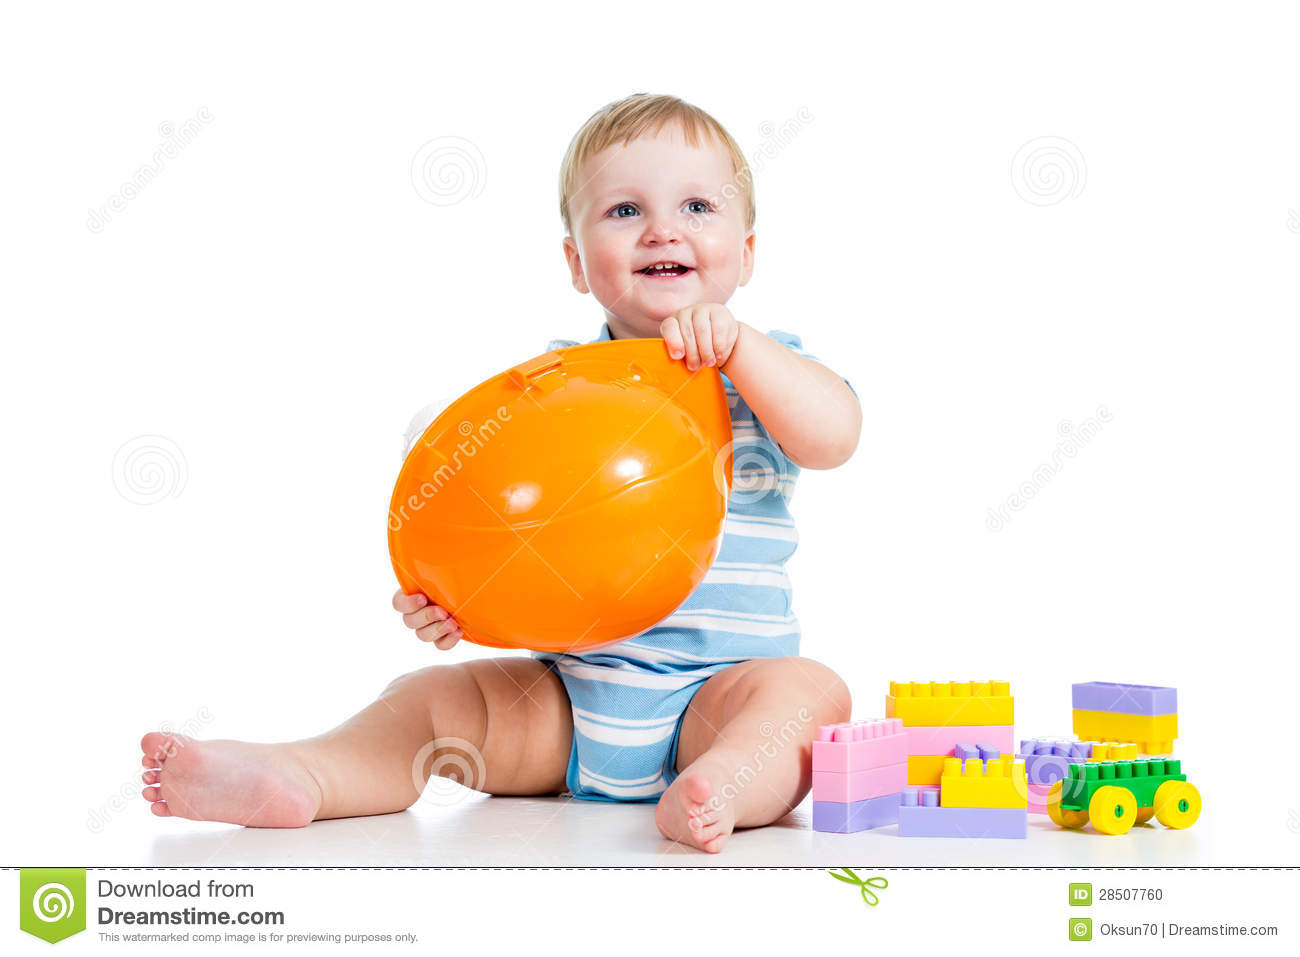 Happy kid playing with building blocks toy